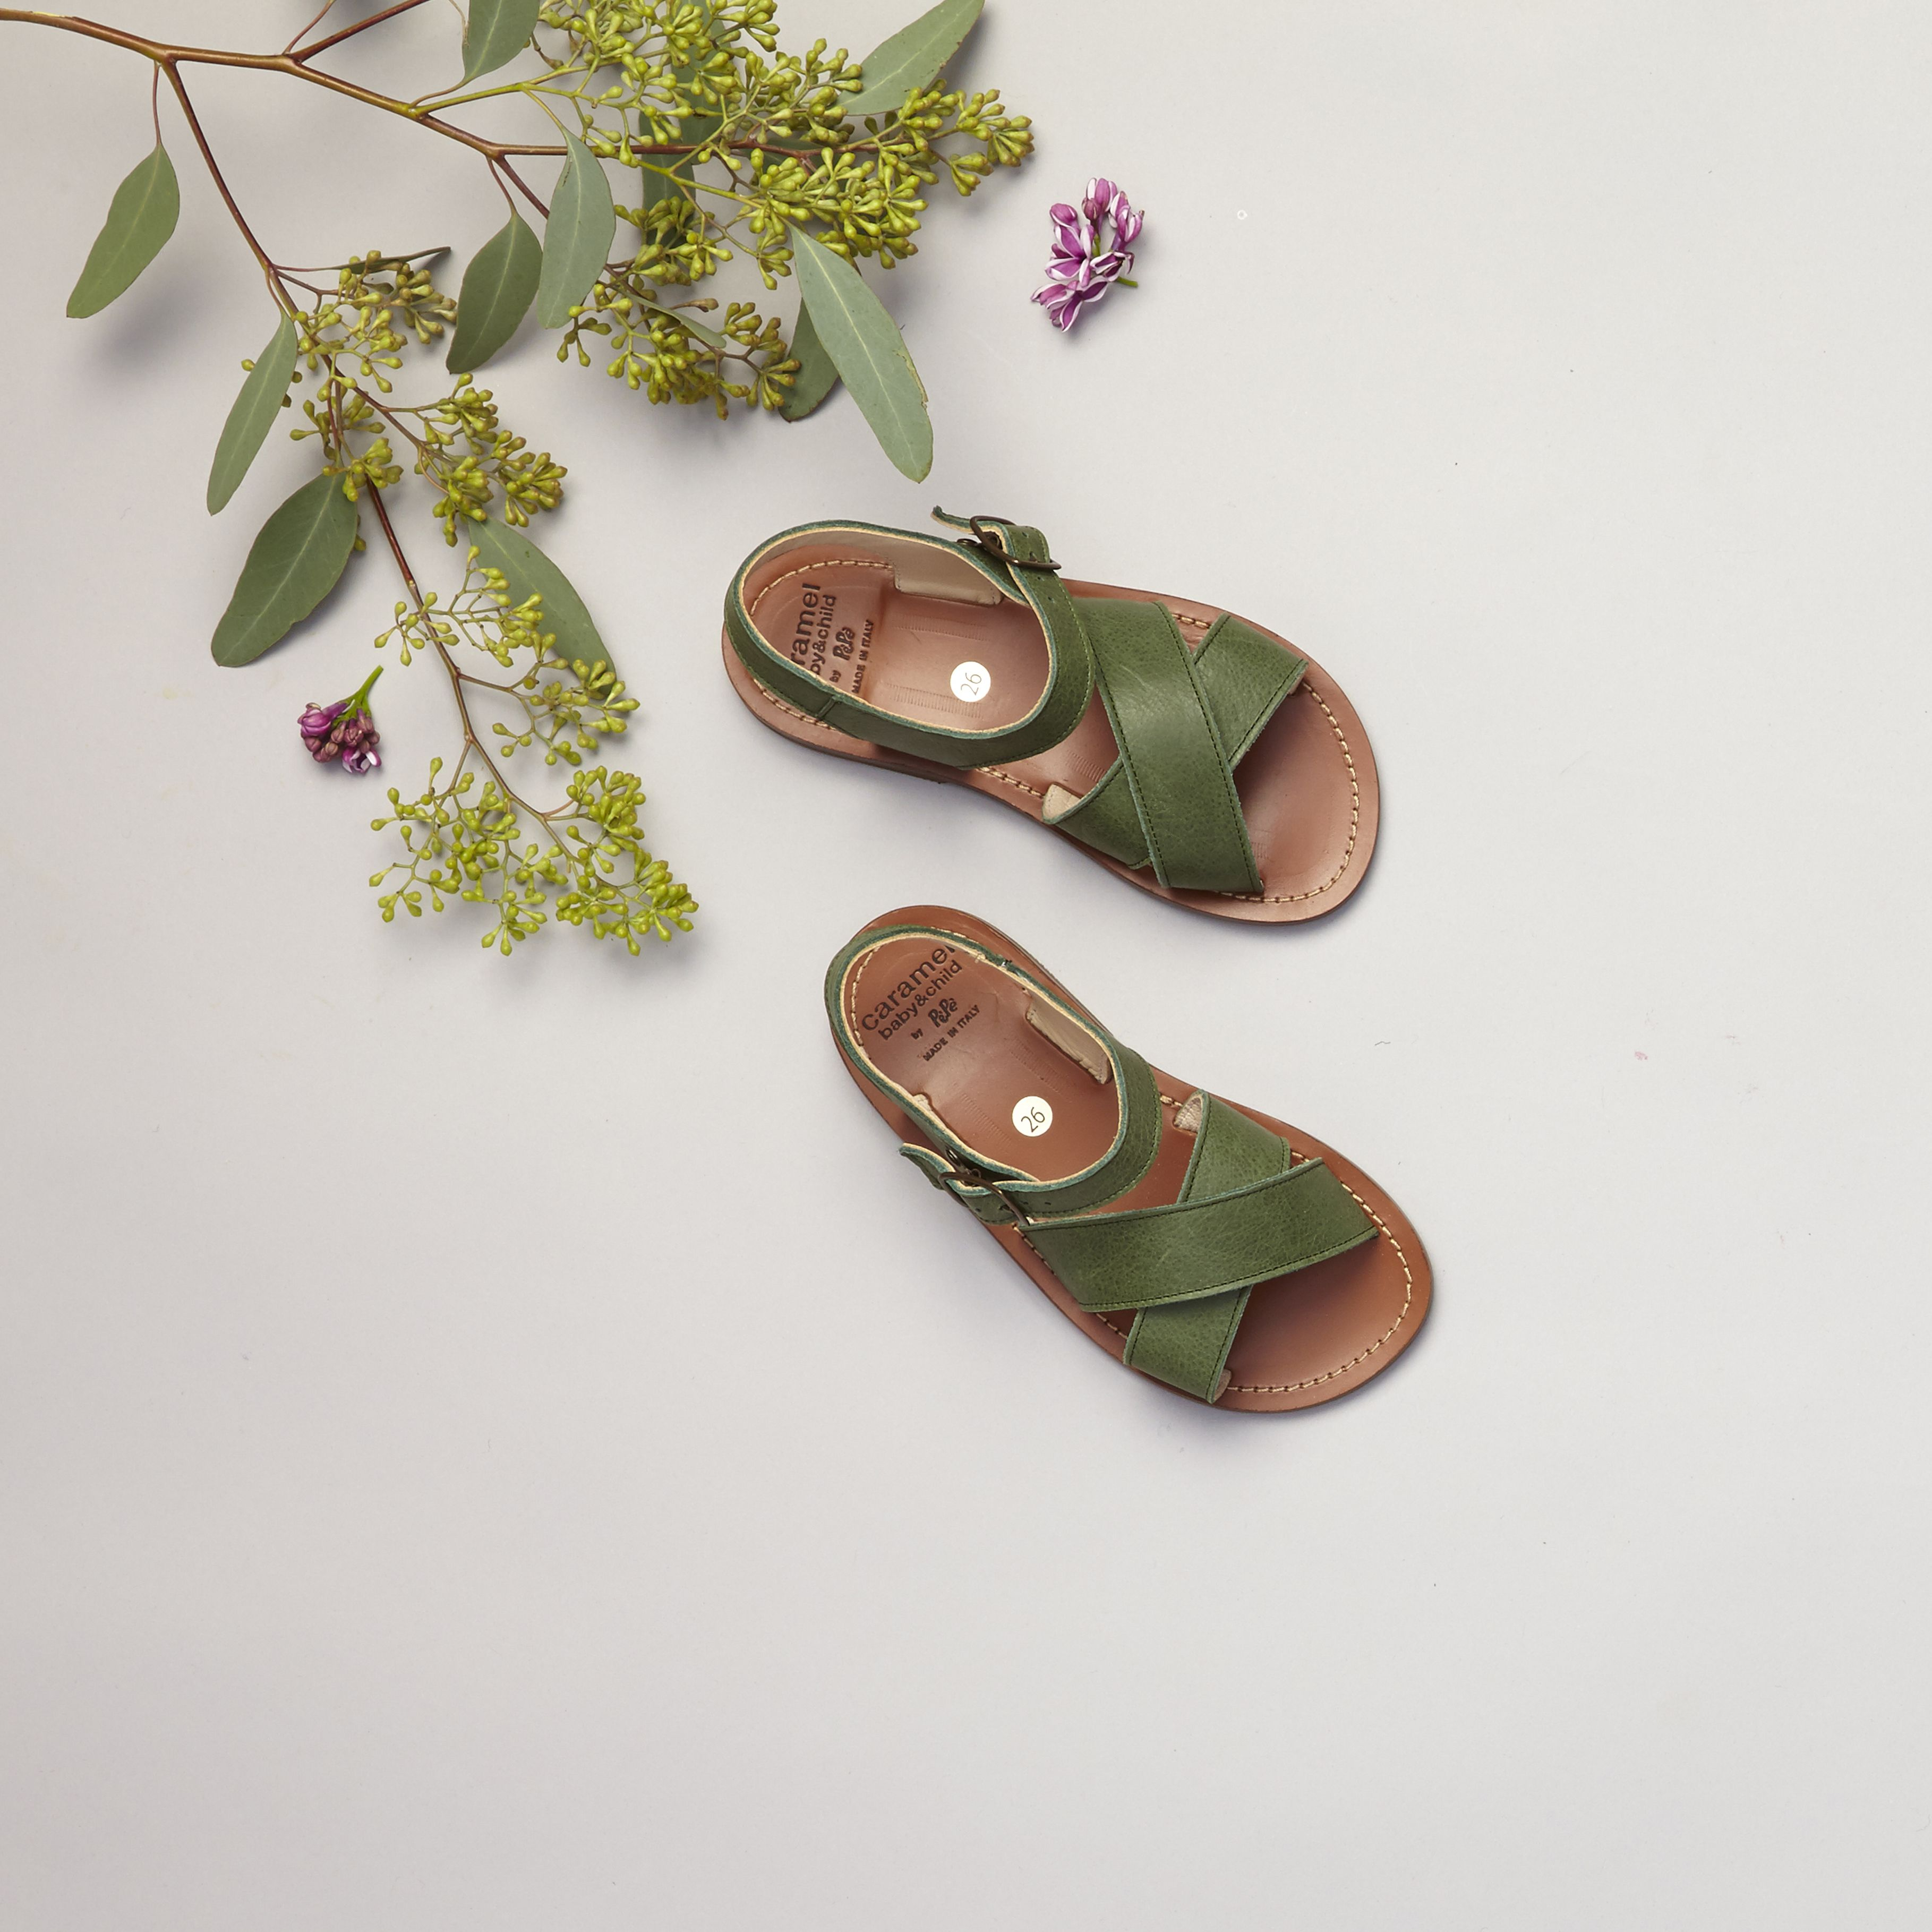 Pepe Sienna Sandal Green, Caramel Baby & Child.